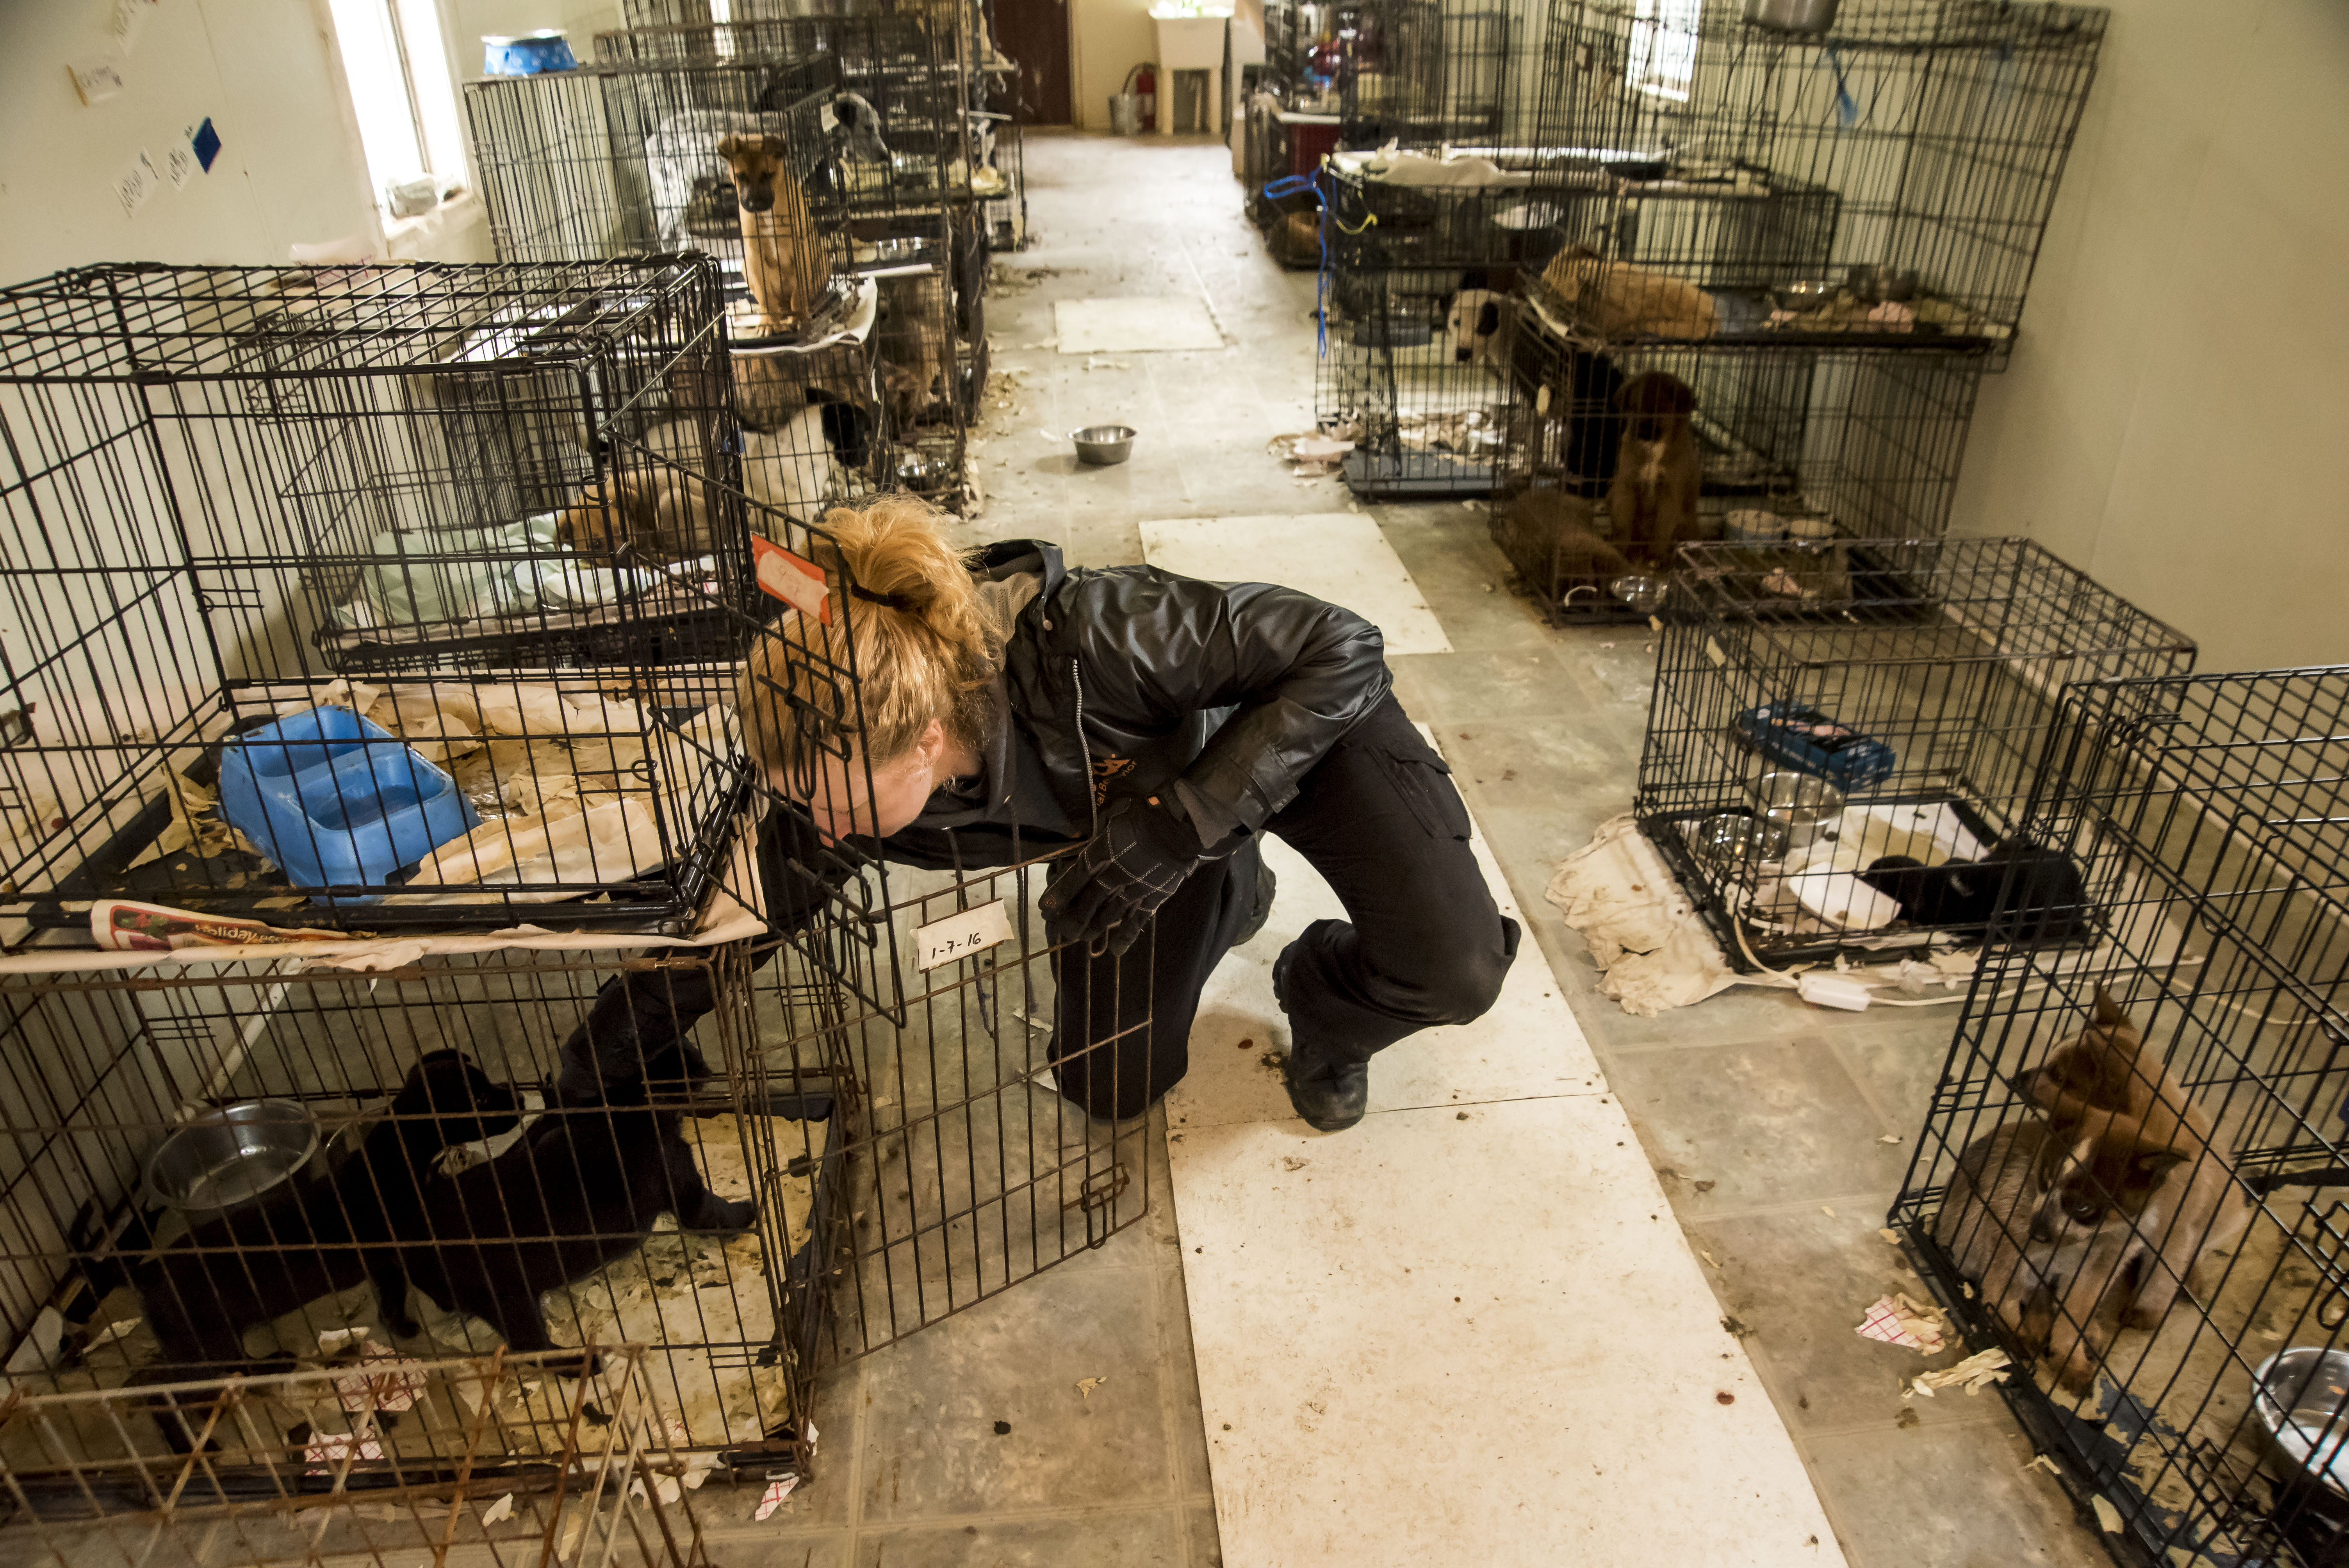 Dogs Kept In Cages All Day